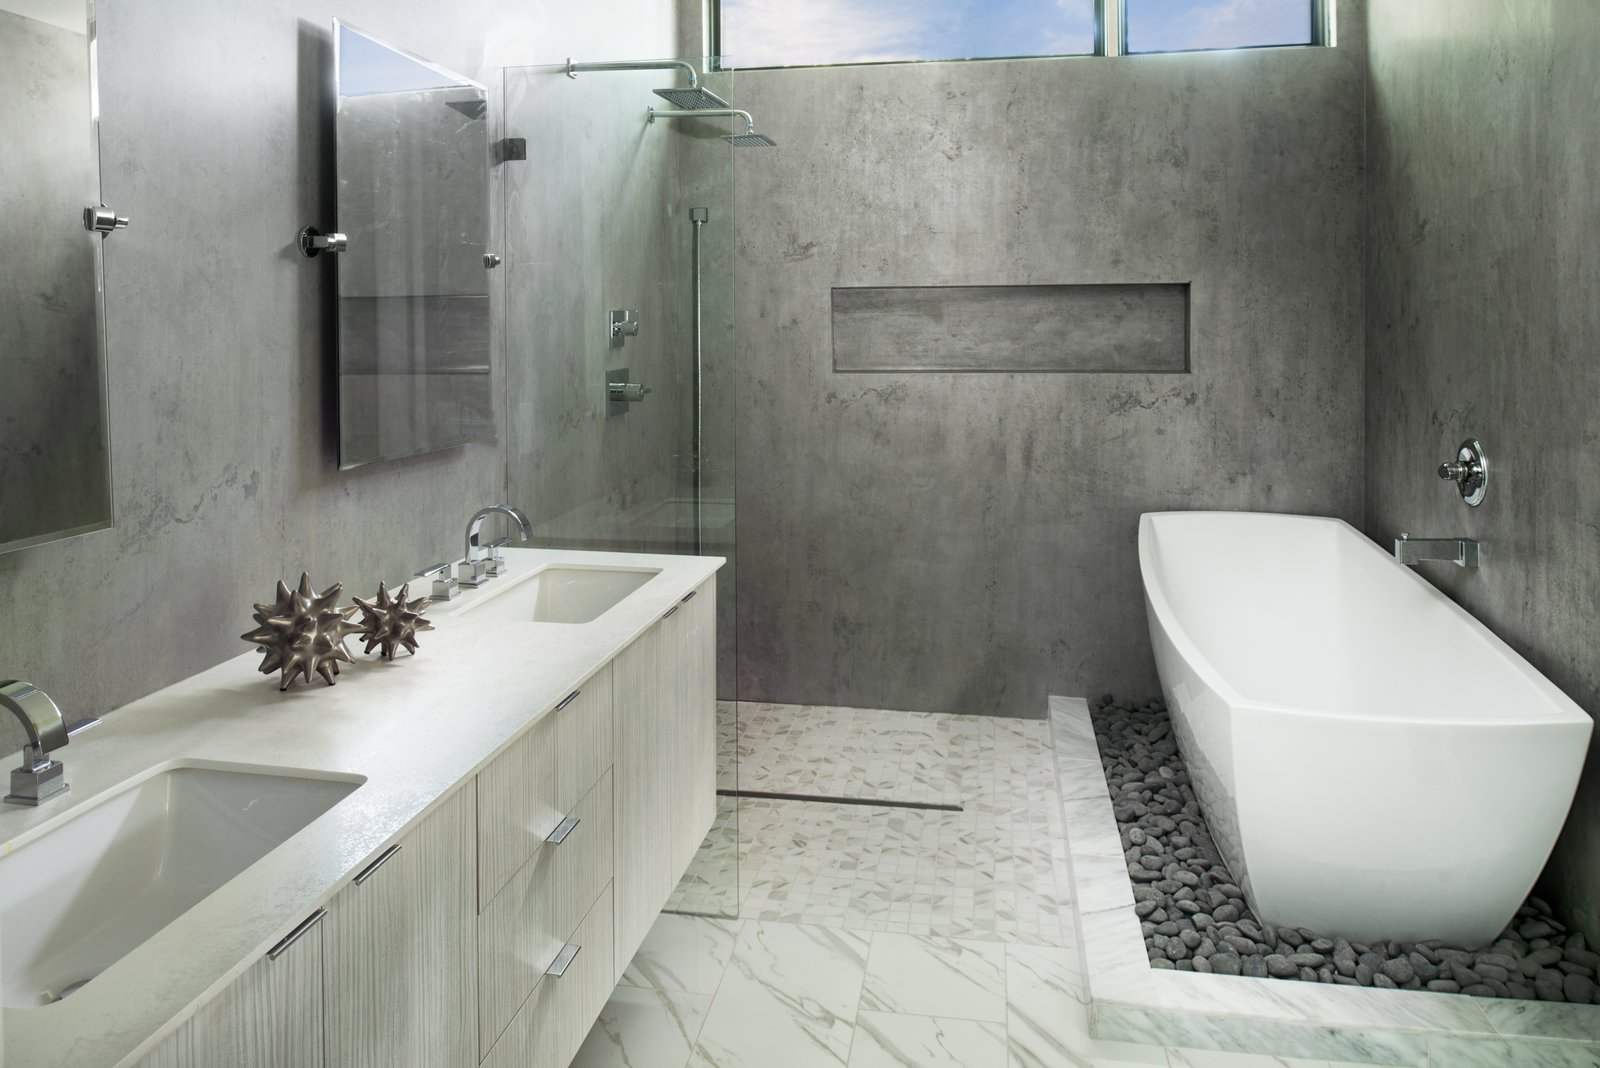 Bath, Engineered Quartz, Freestanding, Porcelain Tile, Open, Undermount, Wall, Recessed, One Piece, and Stone Slab Owners Bath  Best Bath Undermount One Piece Wall Engineered Quartz Photos from Sanders